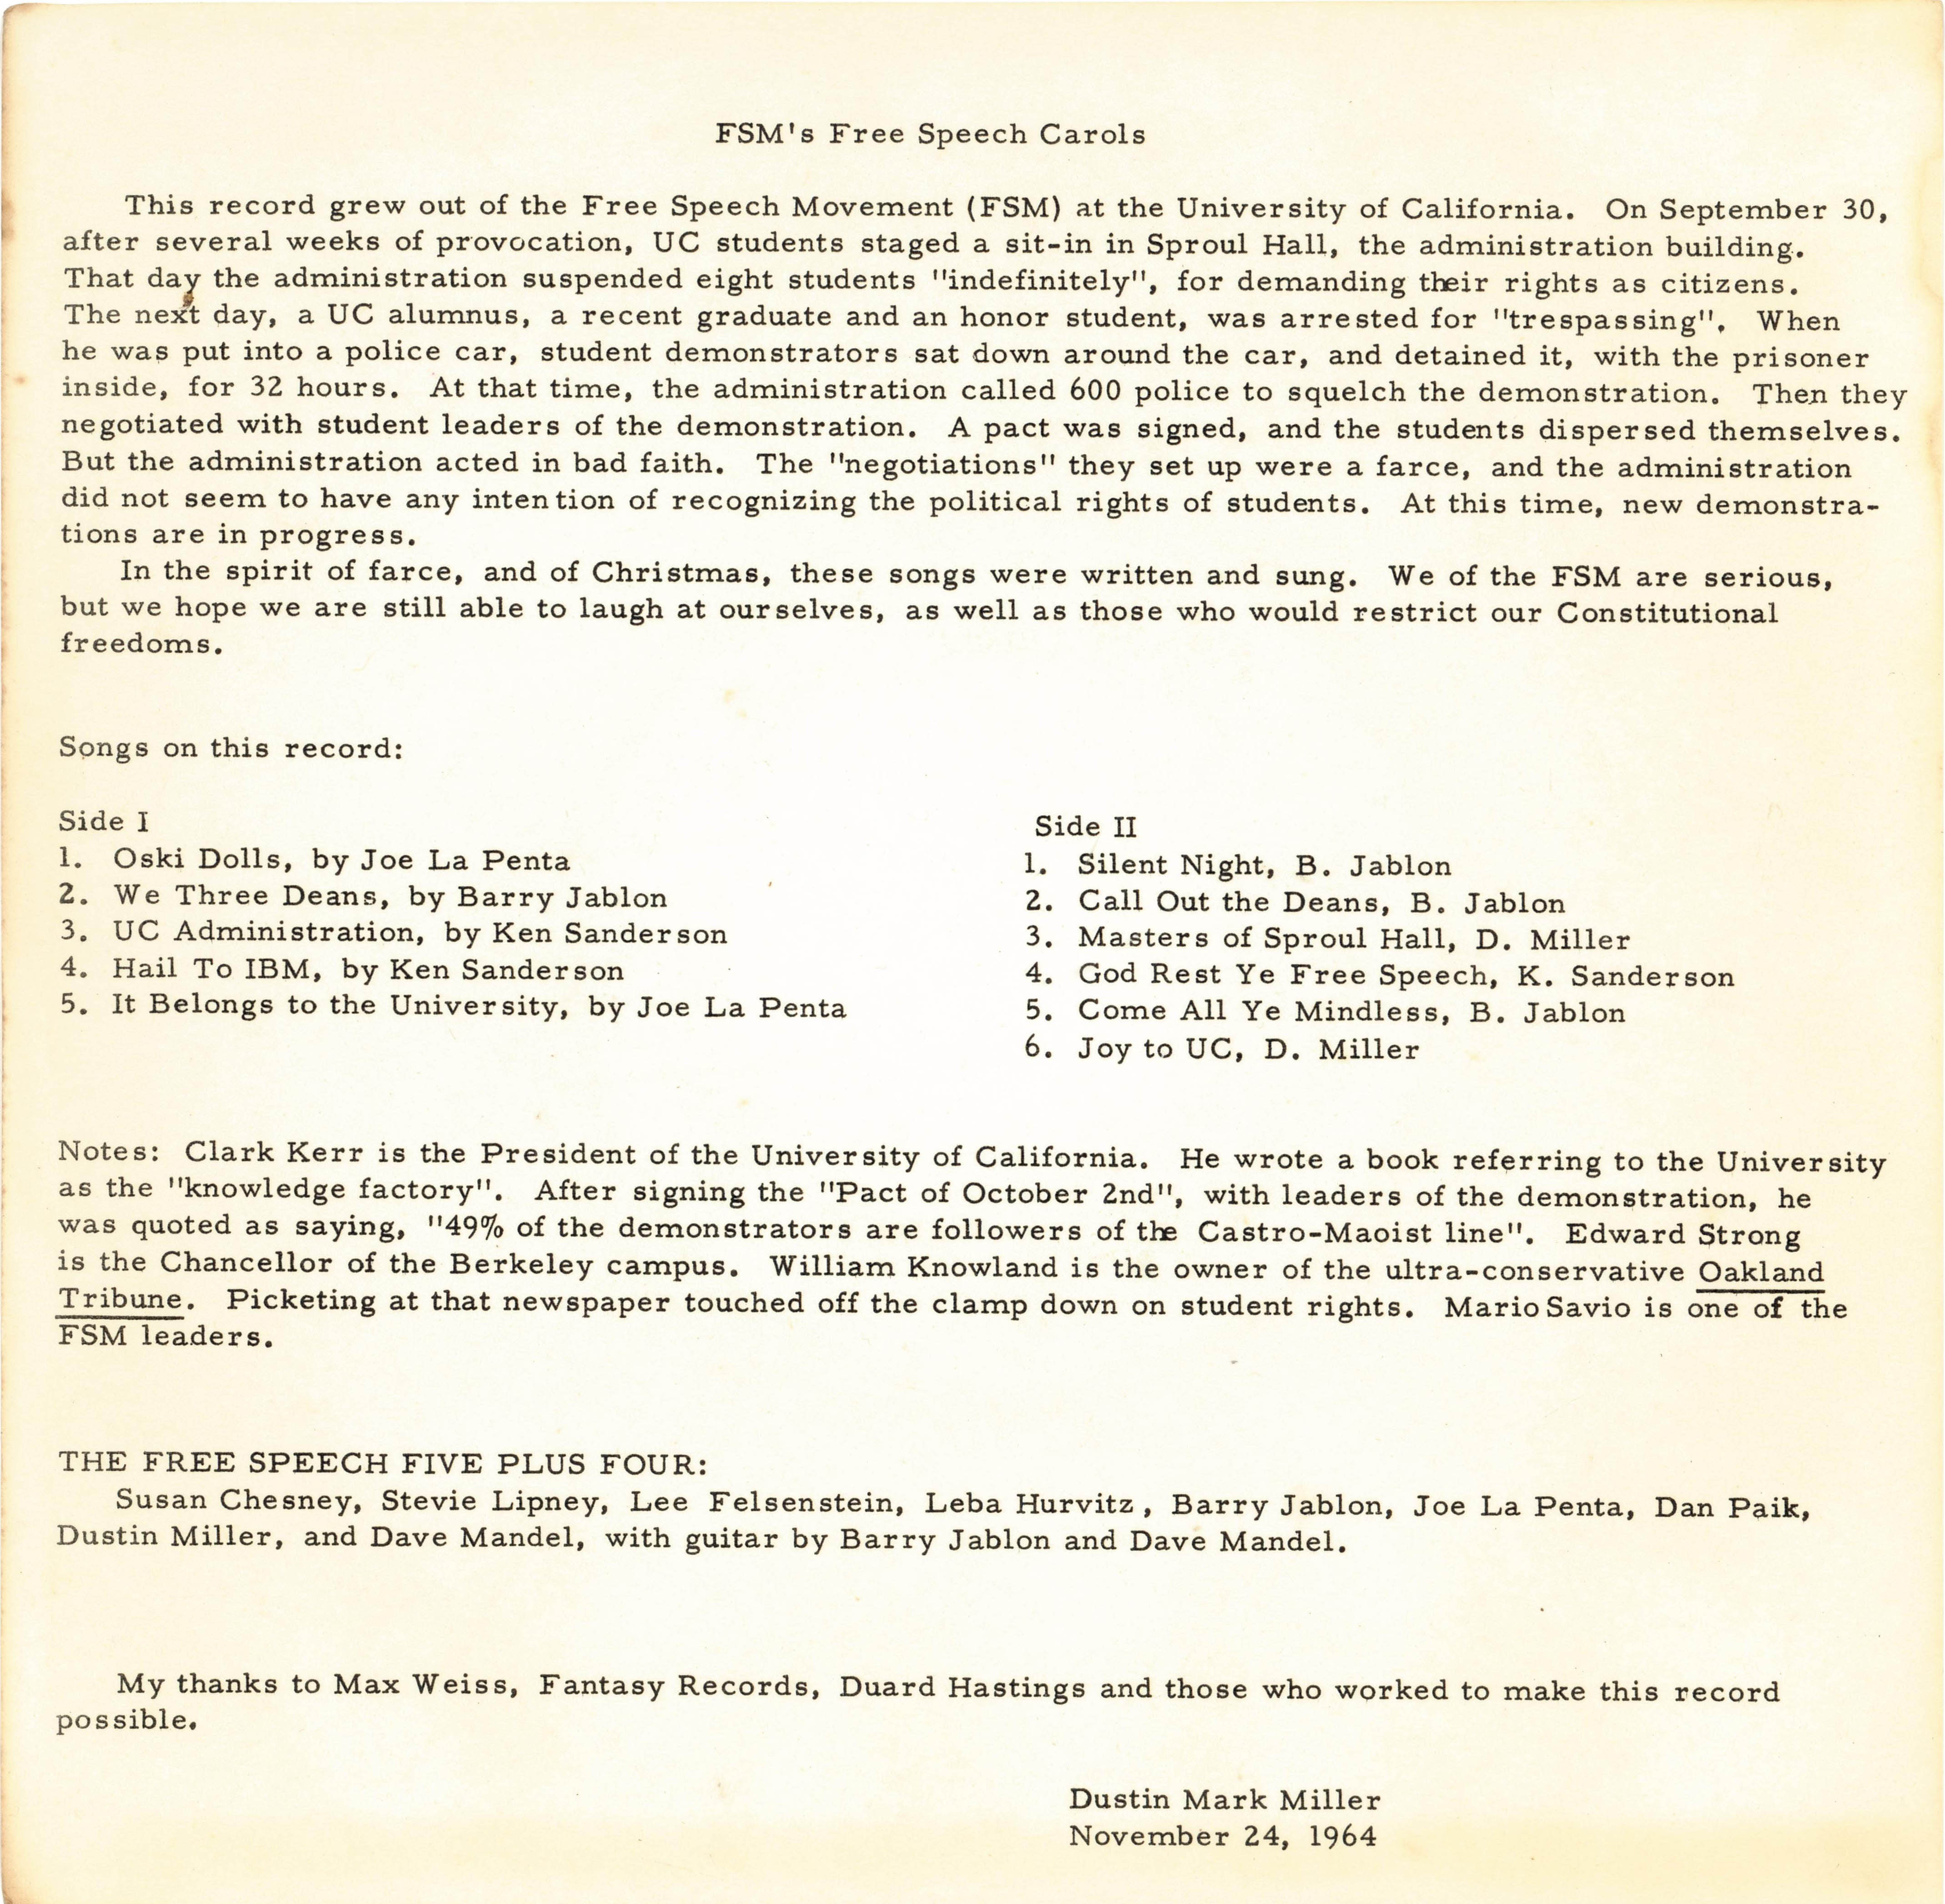 1964-11-24-free-speech-carols-record-rear-cover